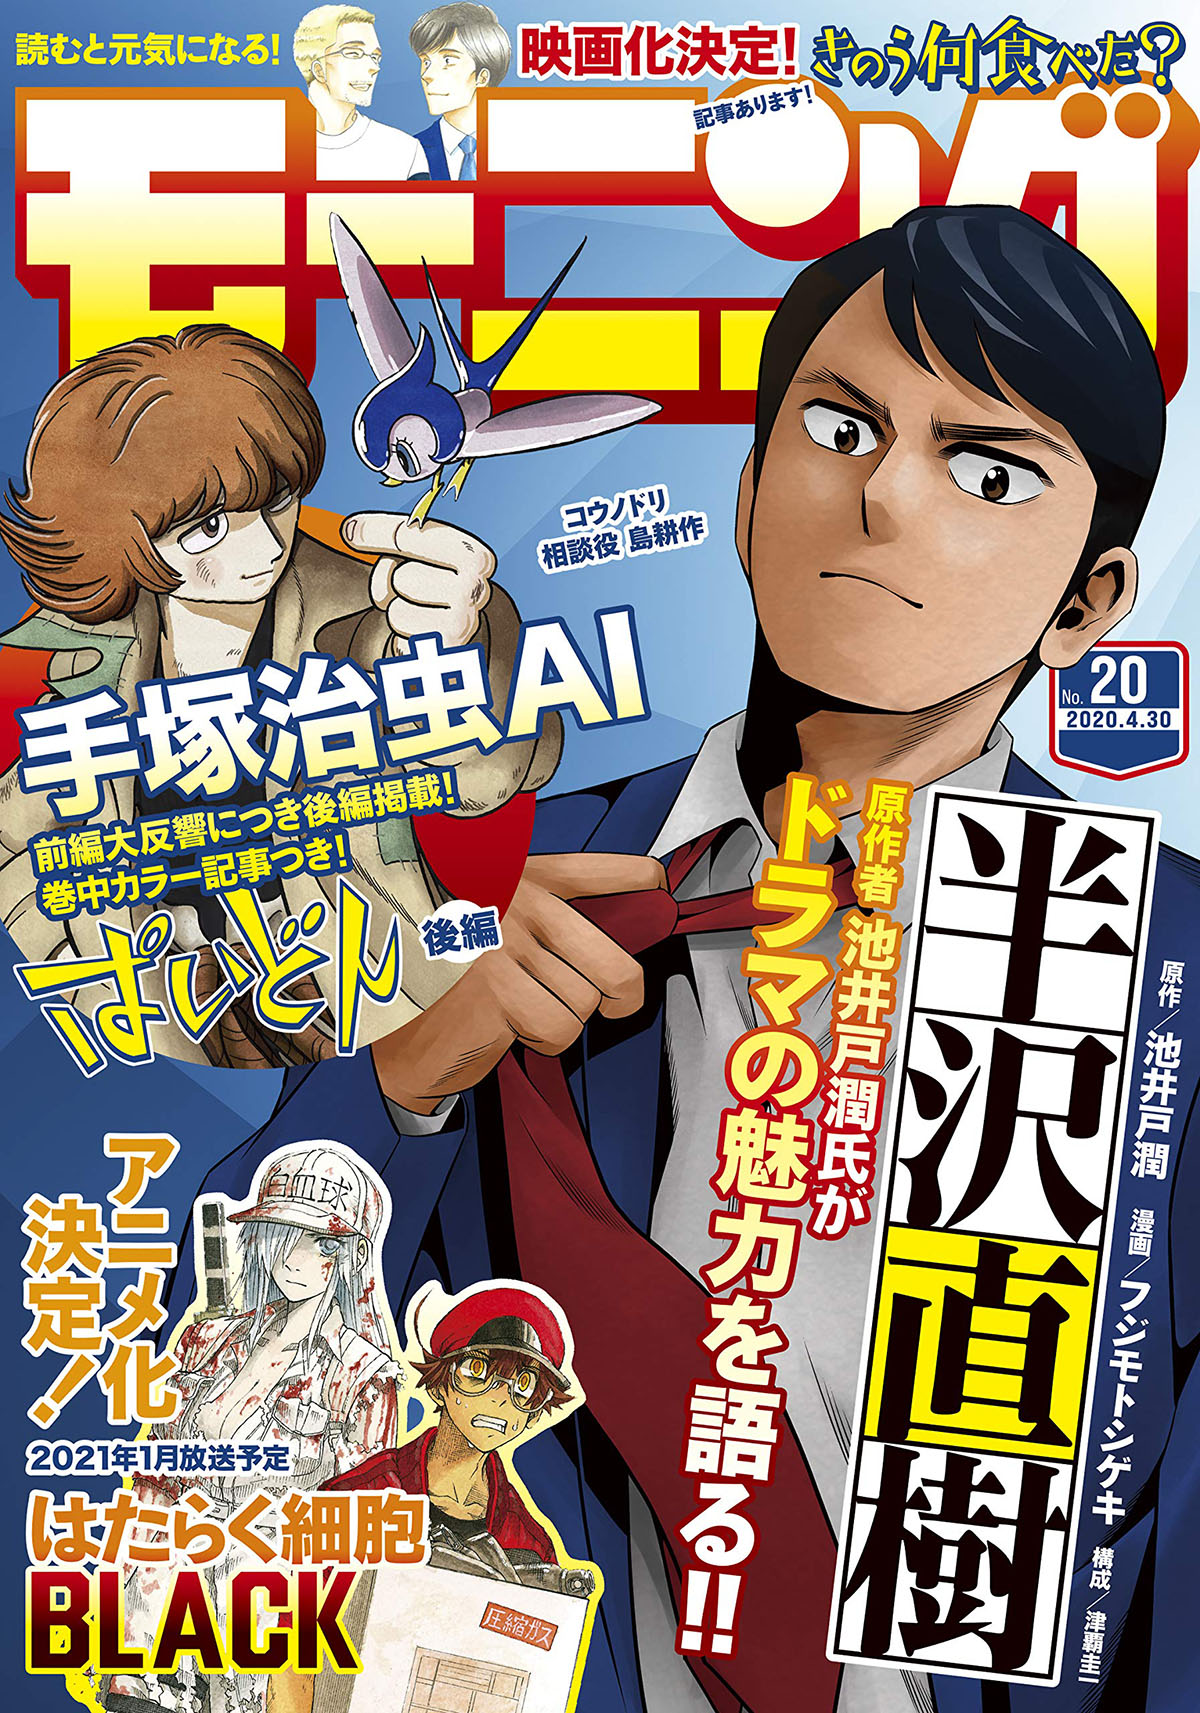 Cells At Work Code Black Anime Announcement